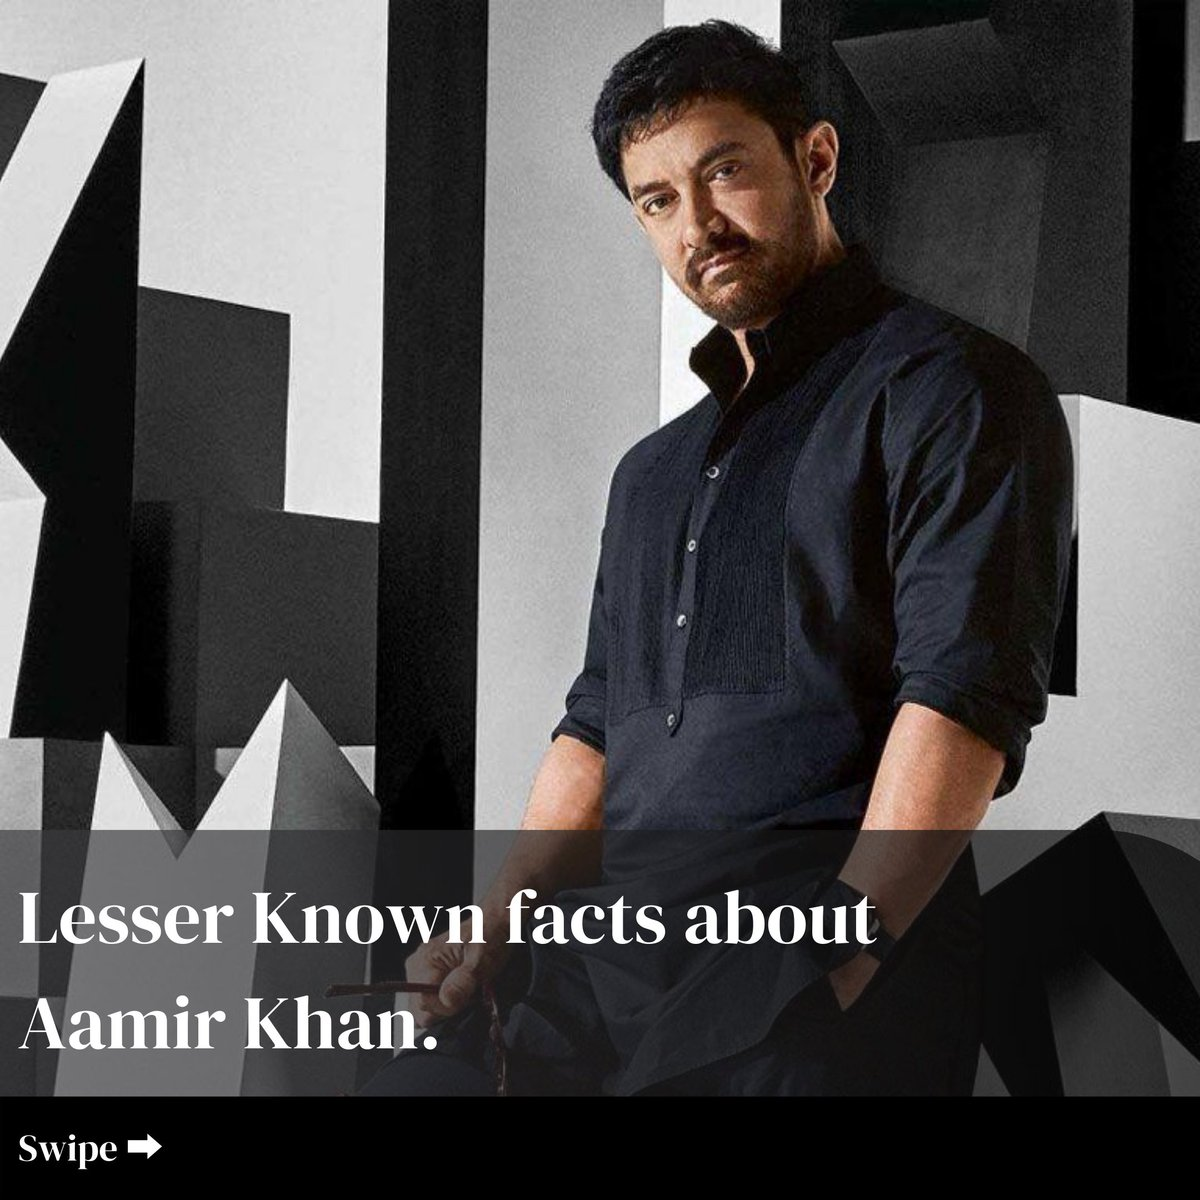 𝗟𝗲𝘀𝘀𝗲𝗿 𝗞𝗻𝗼𝘄𝗻 𝗳𝗮𝗰𝘁𝘀 𝗮𝗯𝗼𝘂𝘁 𝗔𝗮𝗺𝗶𝗿 𝗞𝗵𝗮𝗻. Swipe ▶️ . . #facts #aamirkhan #bollywood #moviefacts #celebrity #taarezameenpar #dangal #facts #culturecanvasentertainment